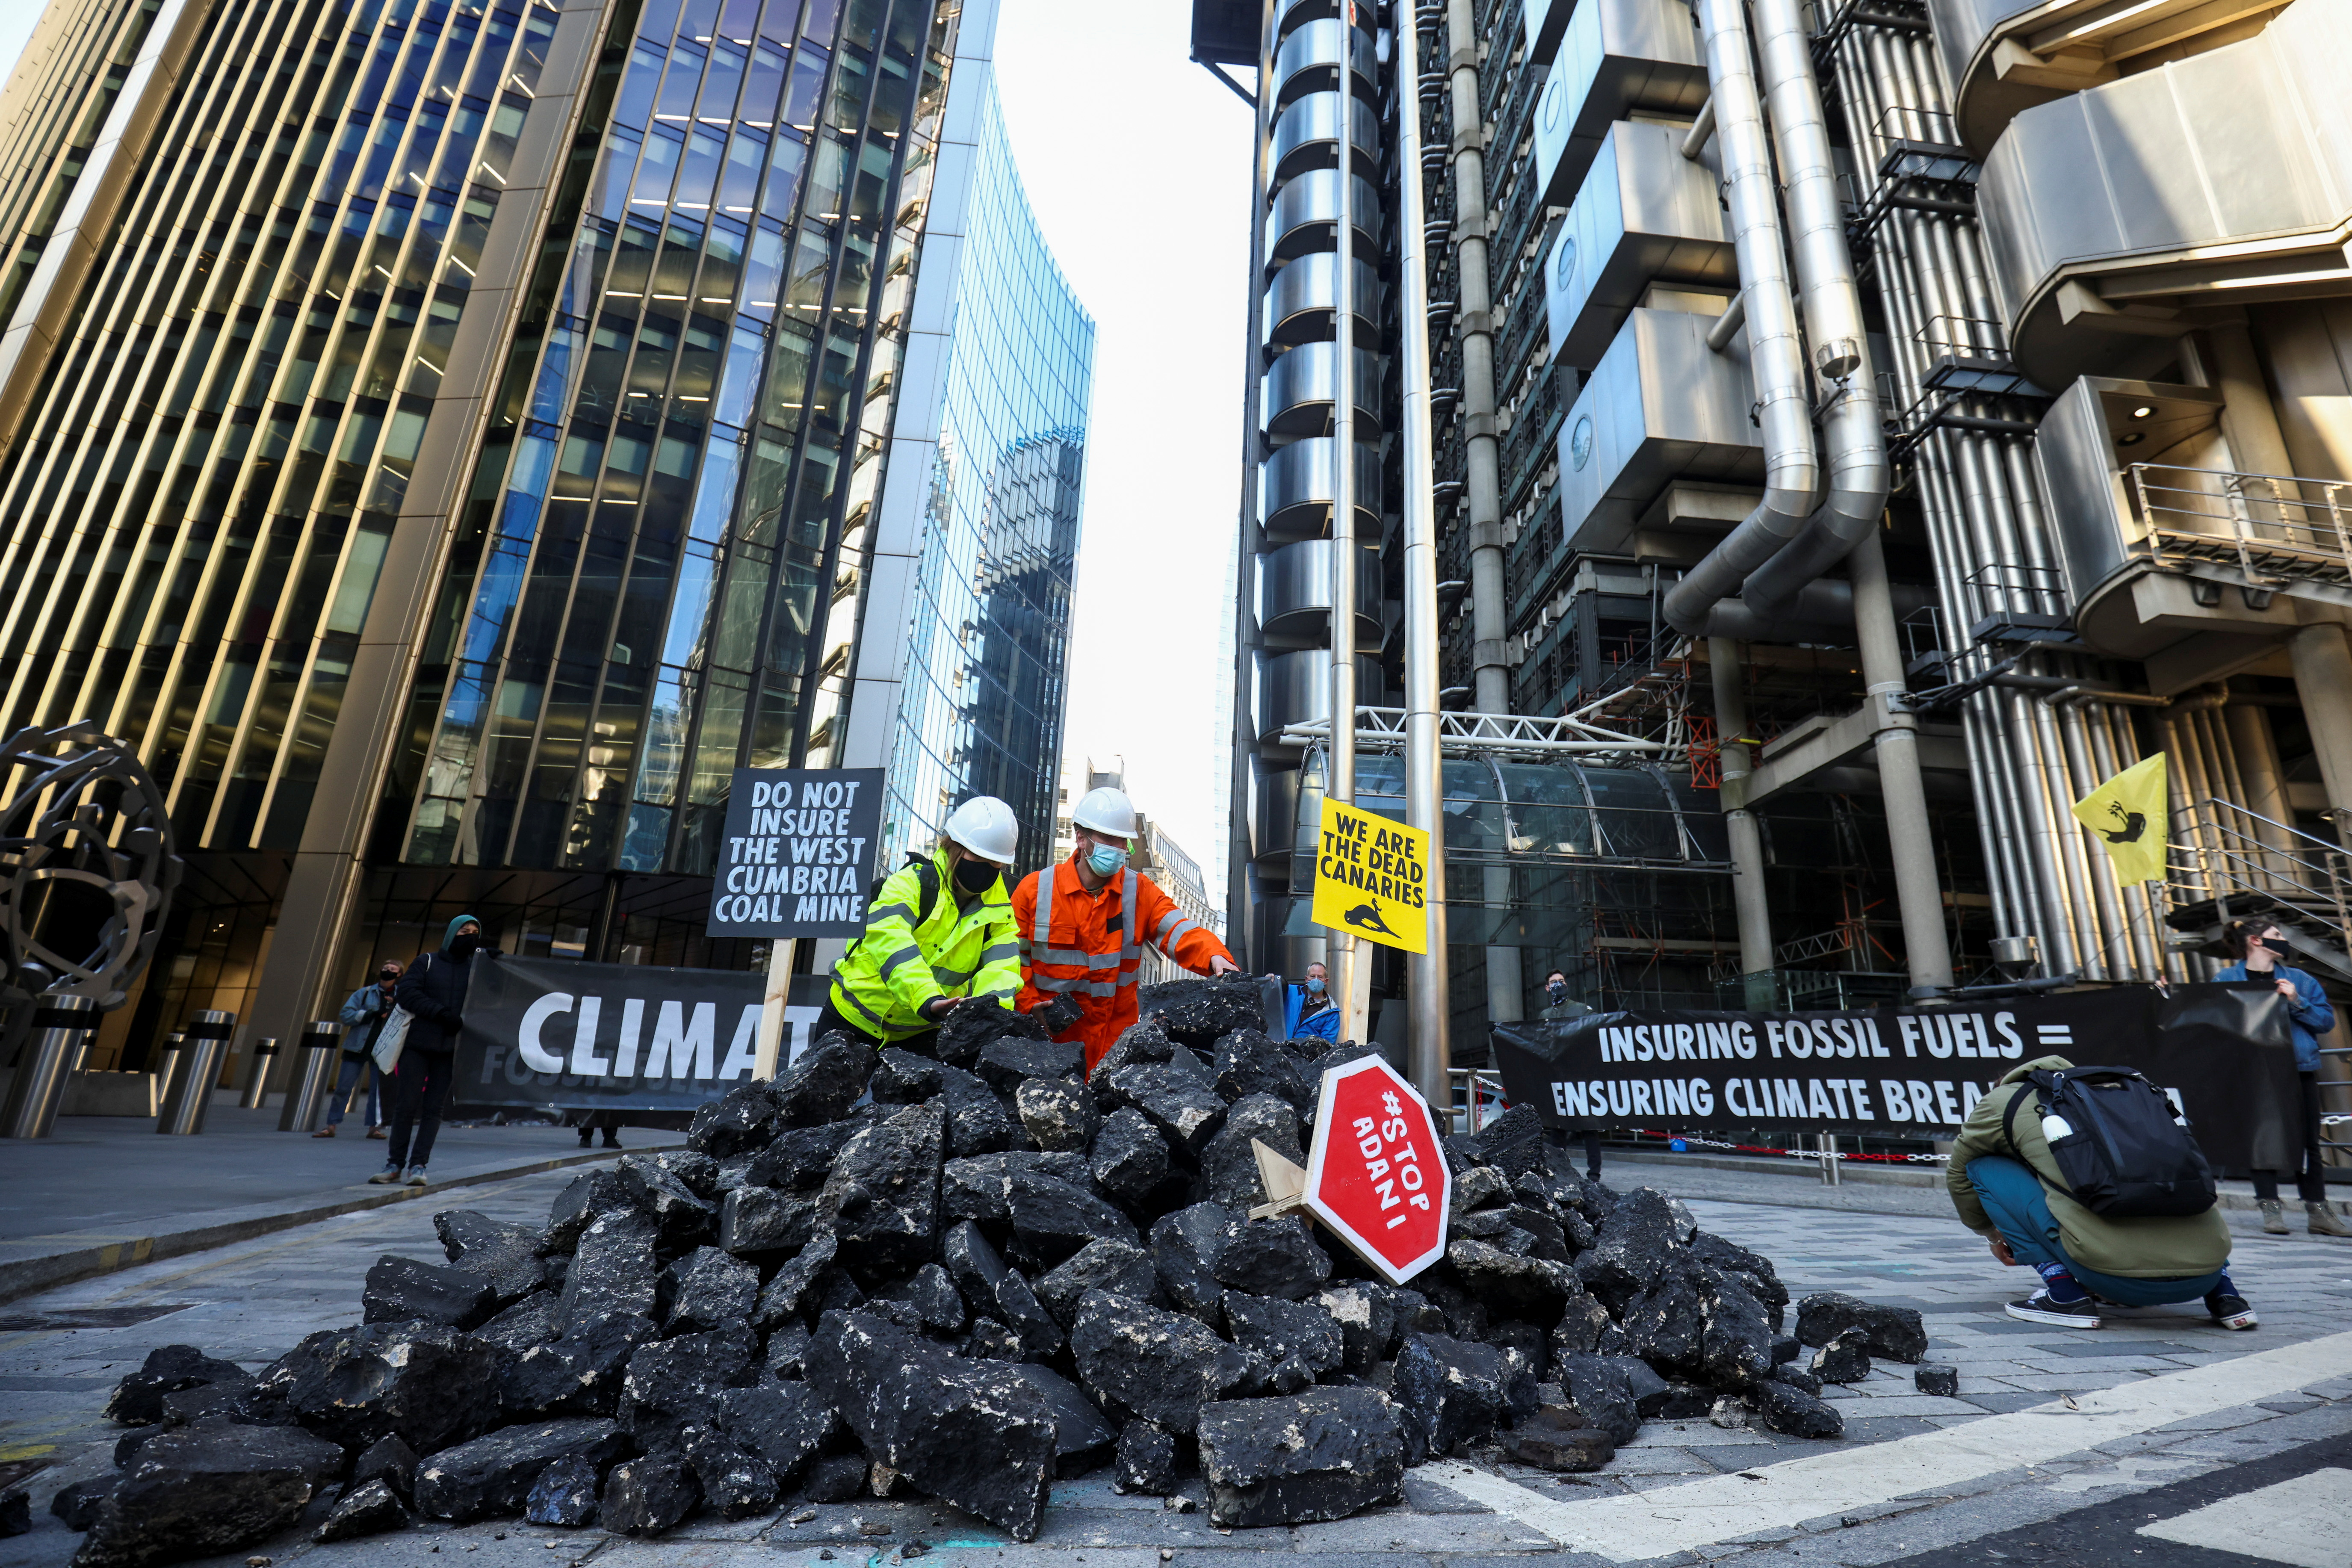 Activists from Extinction Rebellion, a global environmental movement, arrange fake coal, made from rocks, in the street during a protest outside the Lloyd's building in London, Britain April 23, 2021. REUTERS/Henry Nicholls - RC2K1N9L3E3I